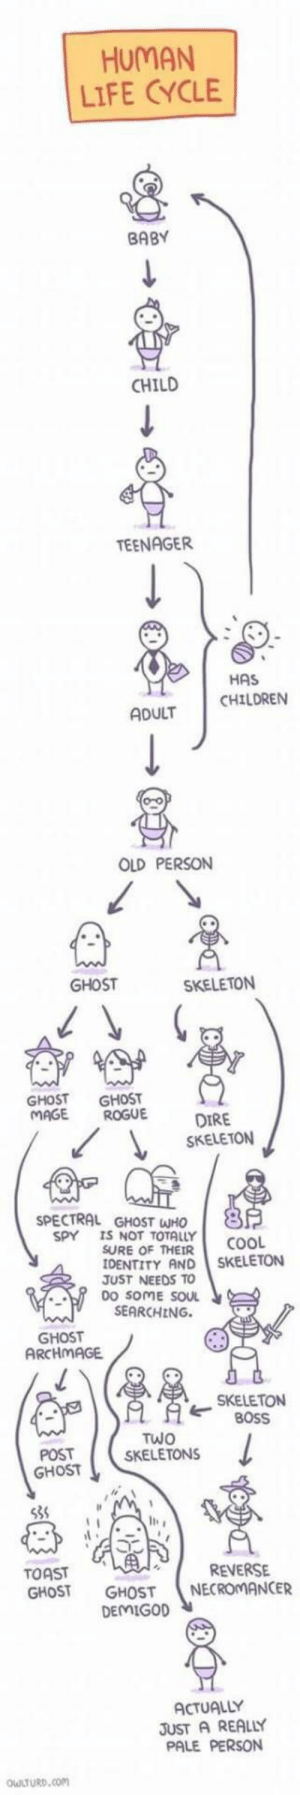 Children, Life, and Cool: HUMAN  LIFE CYCLE  BABY  CHILD  TEENAGER  HAS  ADULT CHILDREN  OLD PERSON  GHOST  SKELETON  GHOST GHOST  MAGE ROGU  DIRE  SKELETON  SPECTRAL GHOST WHO  SPY  IS NOT TOTALLY  SURE OF THEIR  IDENTITY AND SKELETON  JUST NEEDS TO  0O SOME SOUL  COOL  SEARCHING.  GHOST  ARCHMAGE  SKELETON  ピBOSS  TWO  SKELETON!S  POST  GHOST  le  TOAST  GHOST GHOST NECROMANCER  REVERSE  DEMIGOD  ACTUALLY  JUST A REALLY  PALE PERSON  LTURD,Com Bilderparade CDLXIII LangweileDich.net_Bilderparade_CDLXIII_81